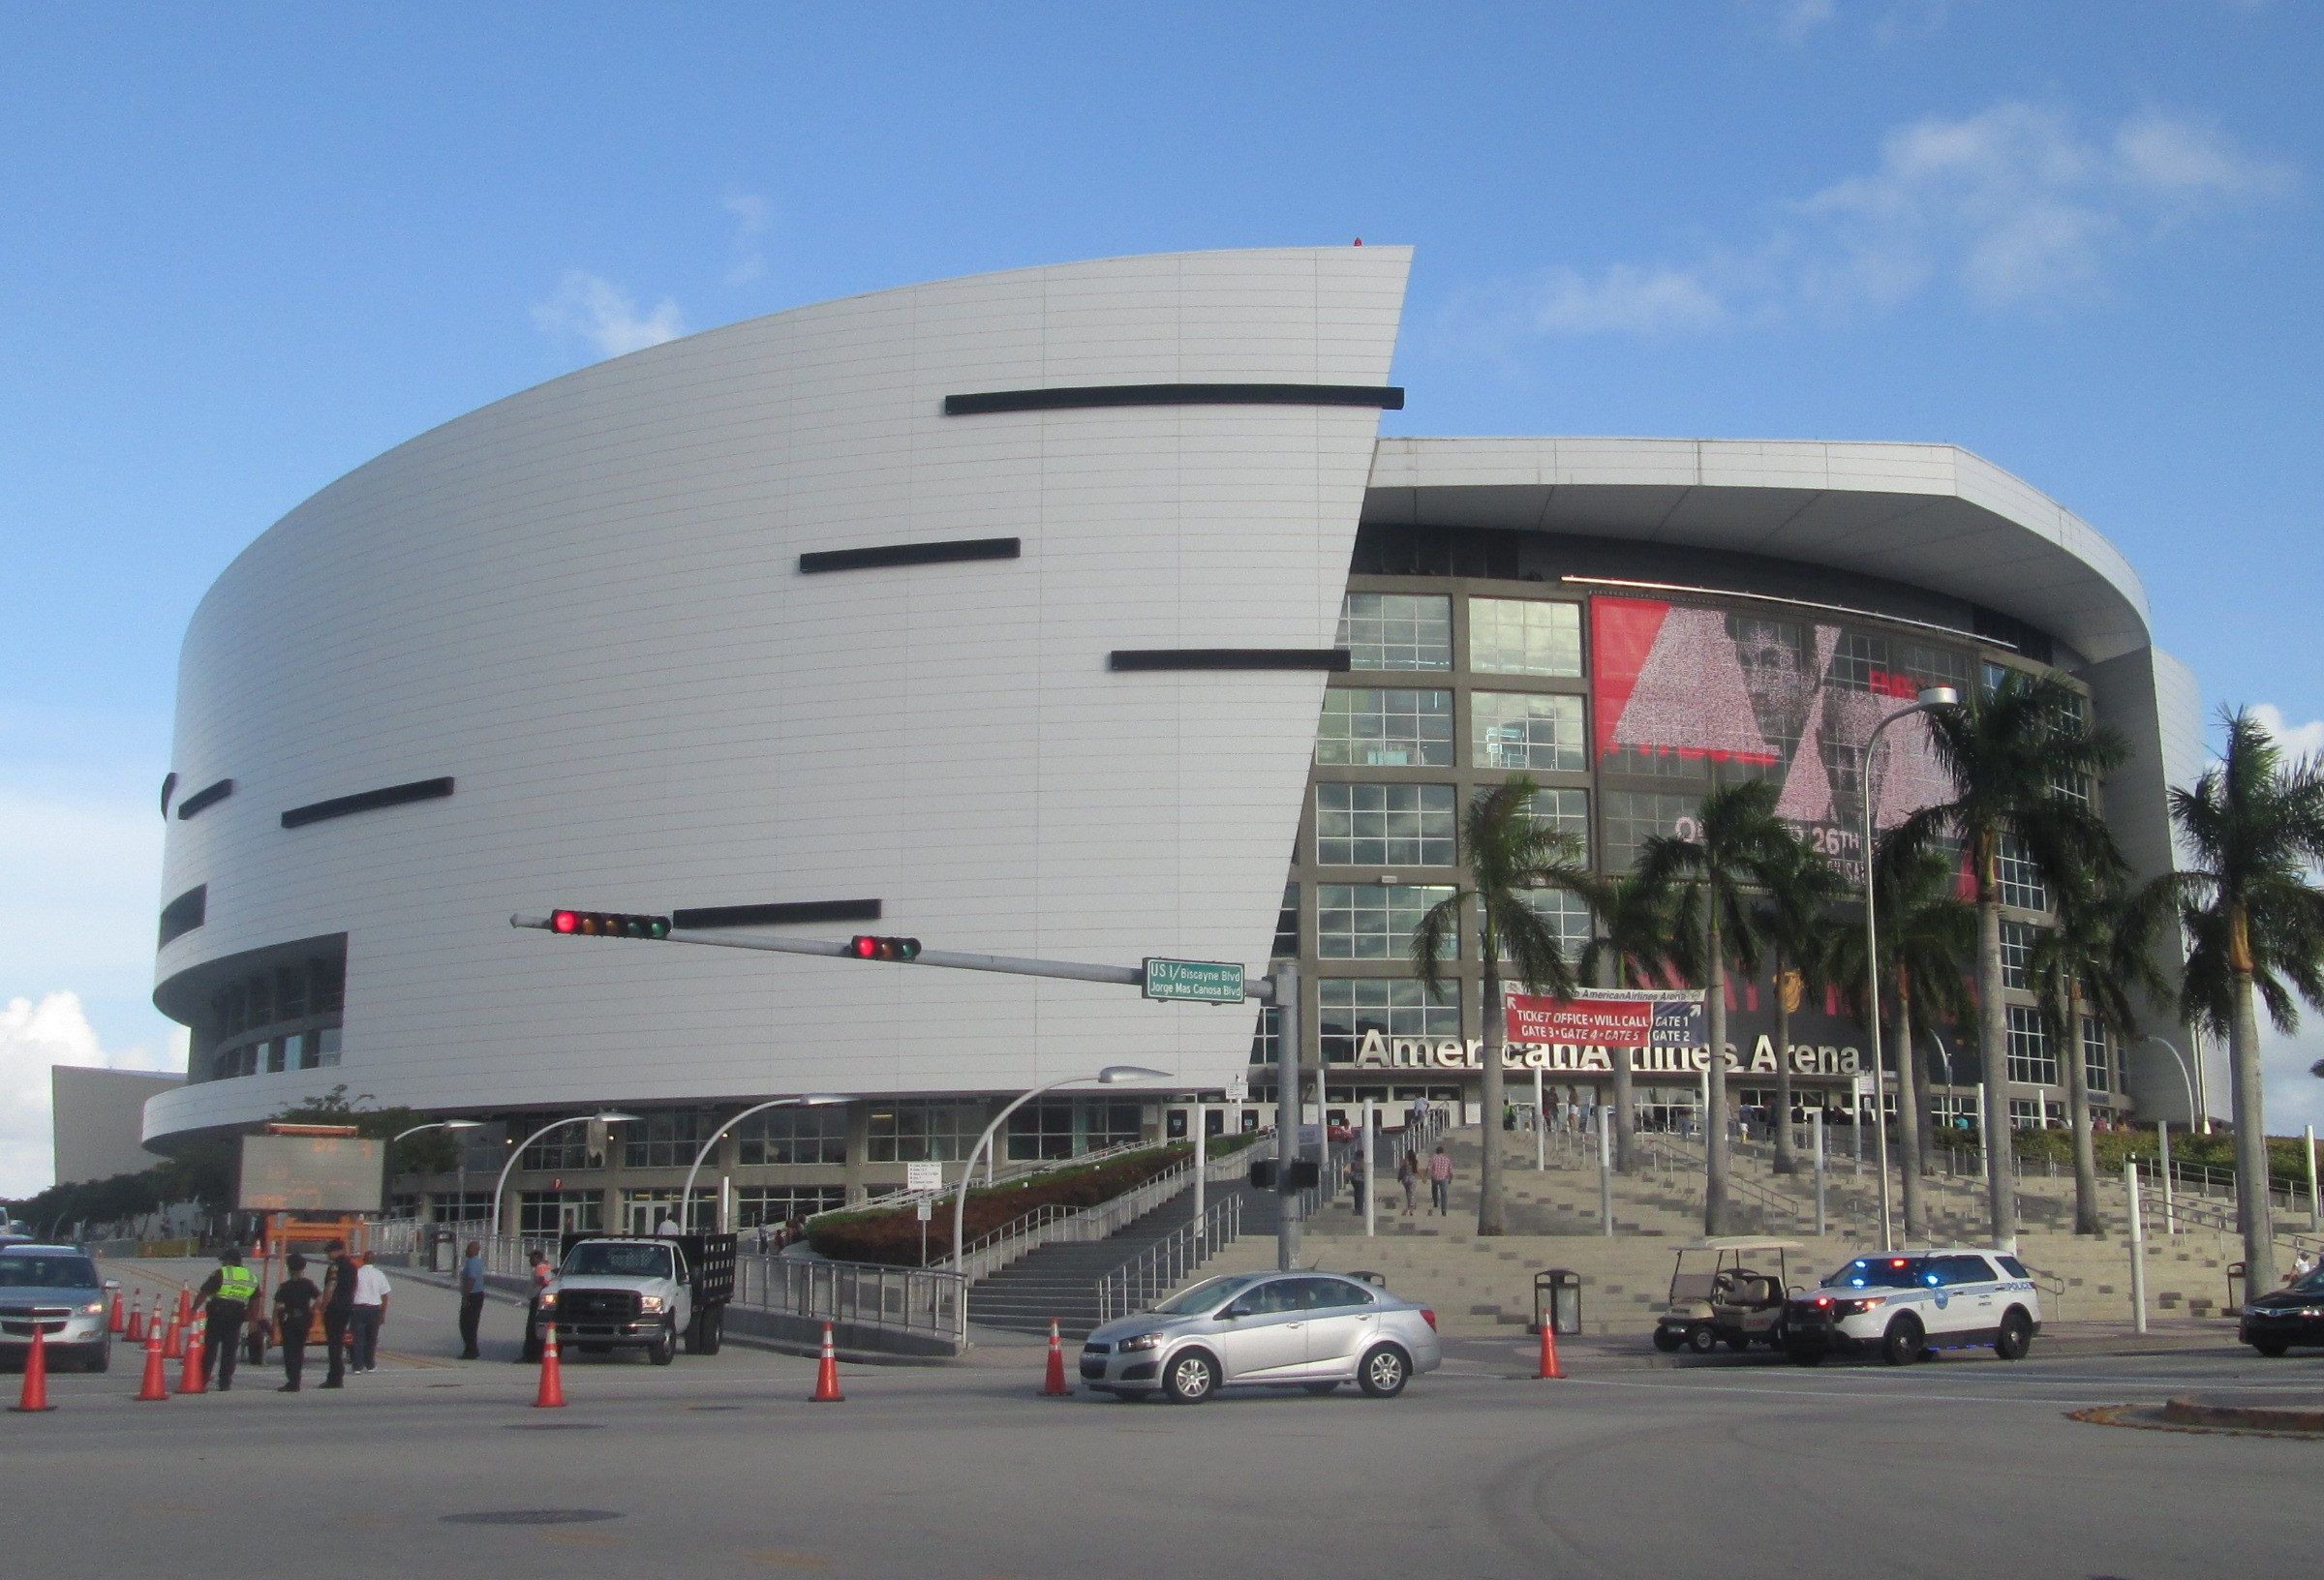 Bangg Bros bang bros bid for naming rights to miami heat stadium and